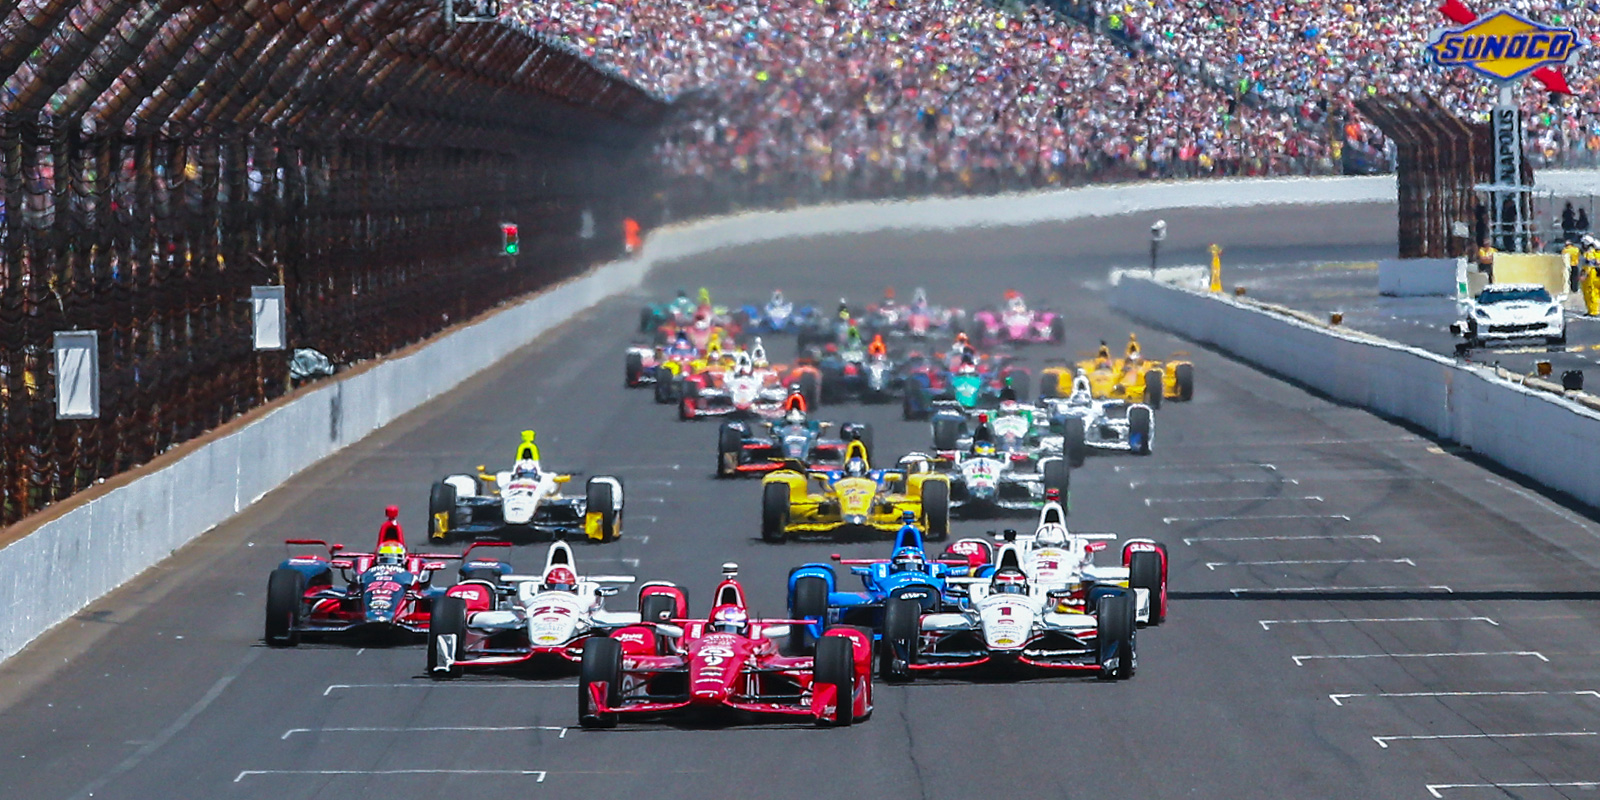 As we get ready to celebrate the th running of the Indianapolis this year, the Indianapolis Motor Speedway is sharing some fun facts about the track itself.